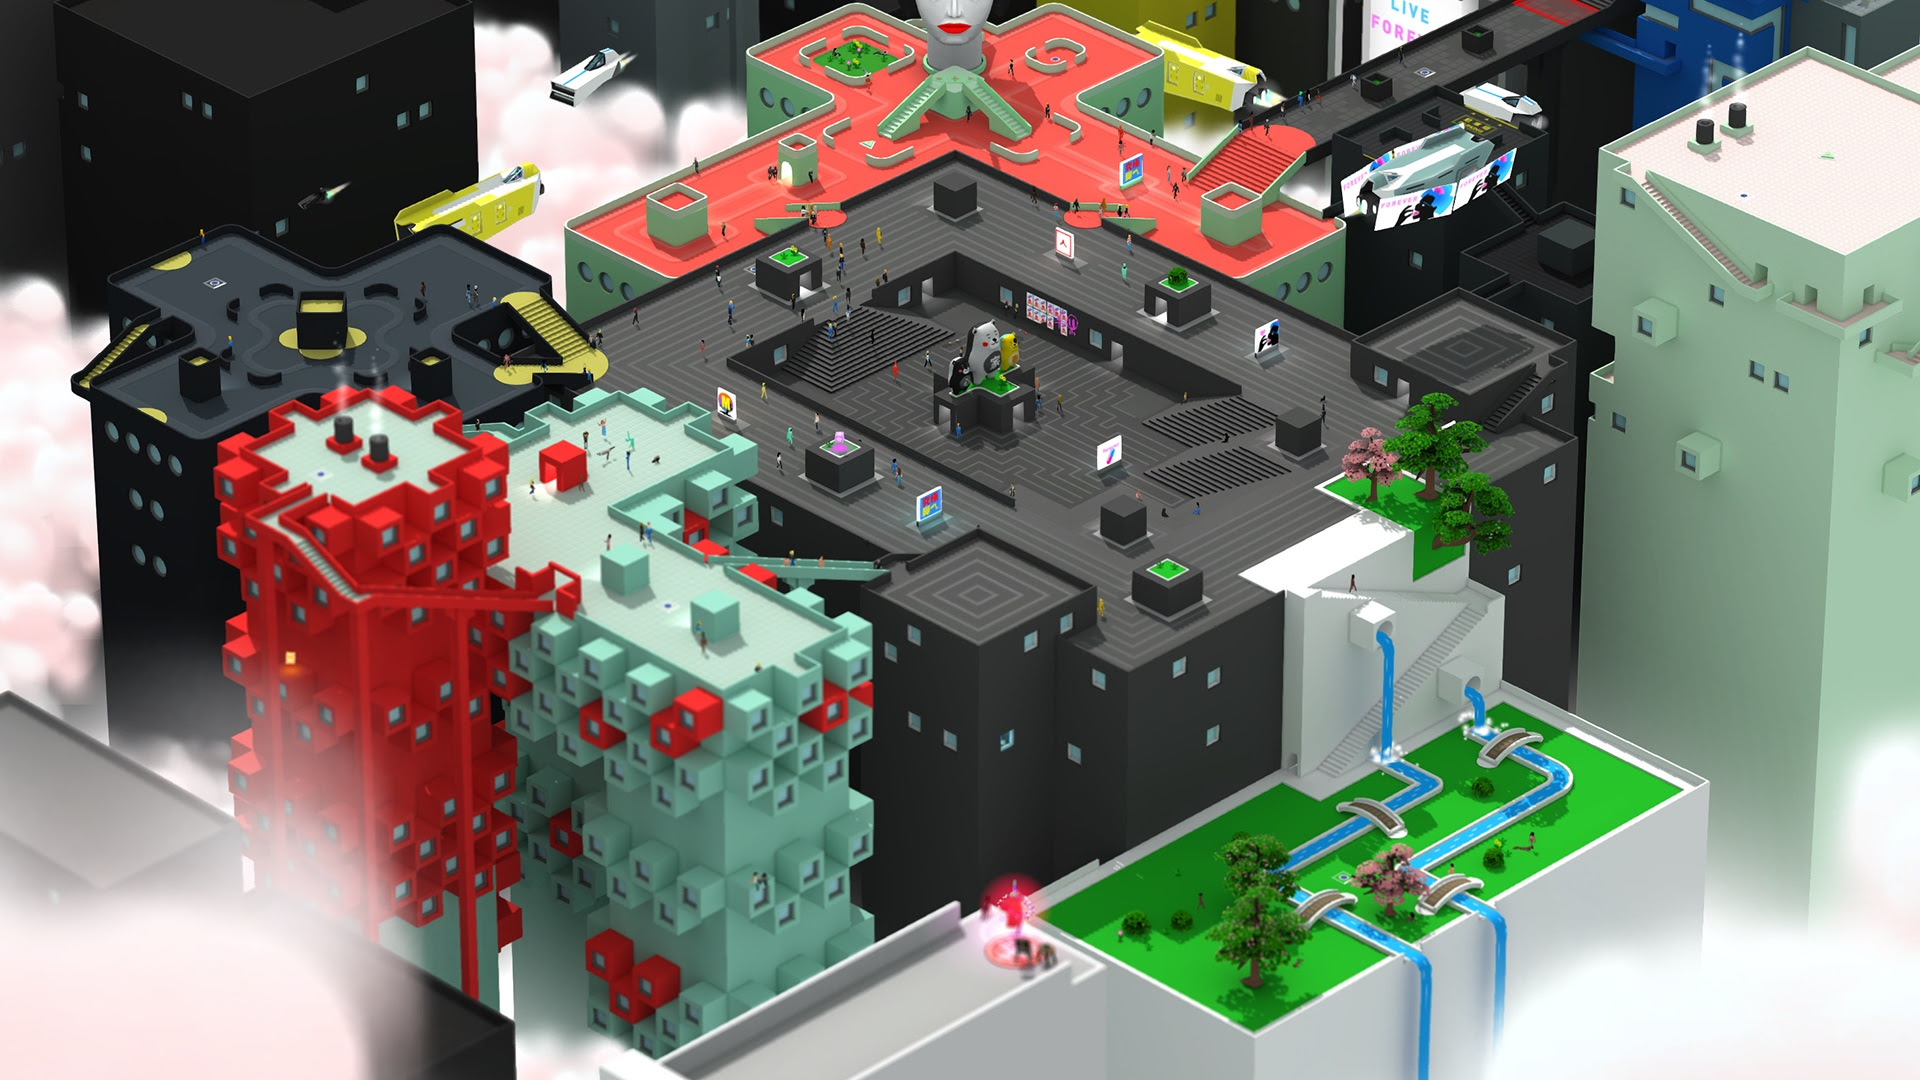 Tokyo 42 launches later this month screenshot